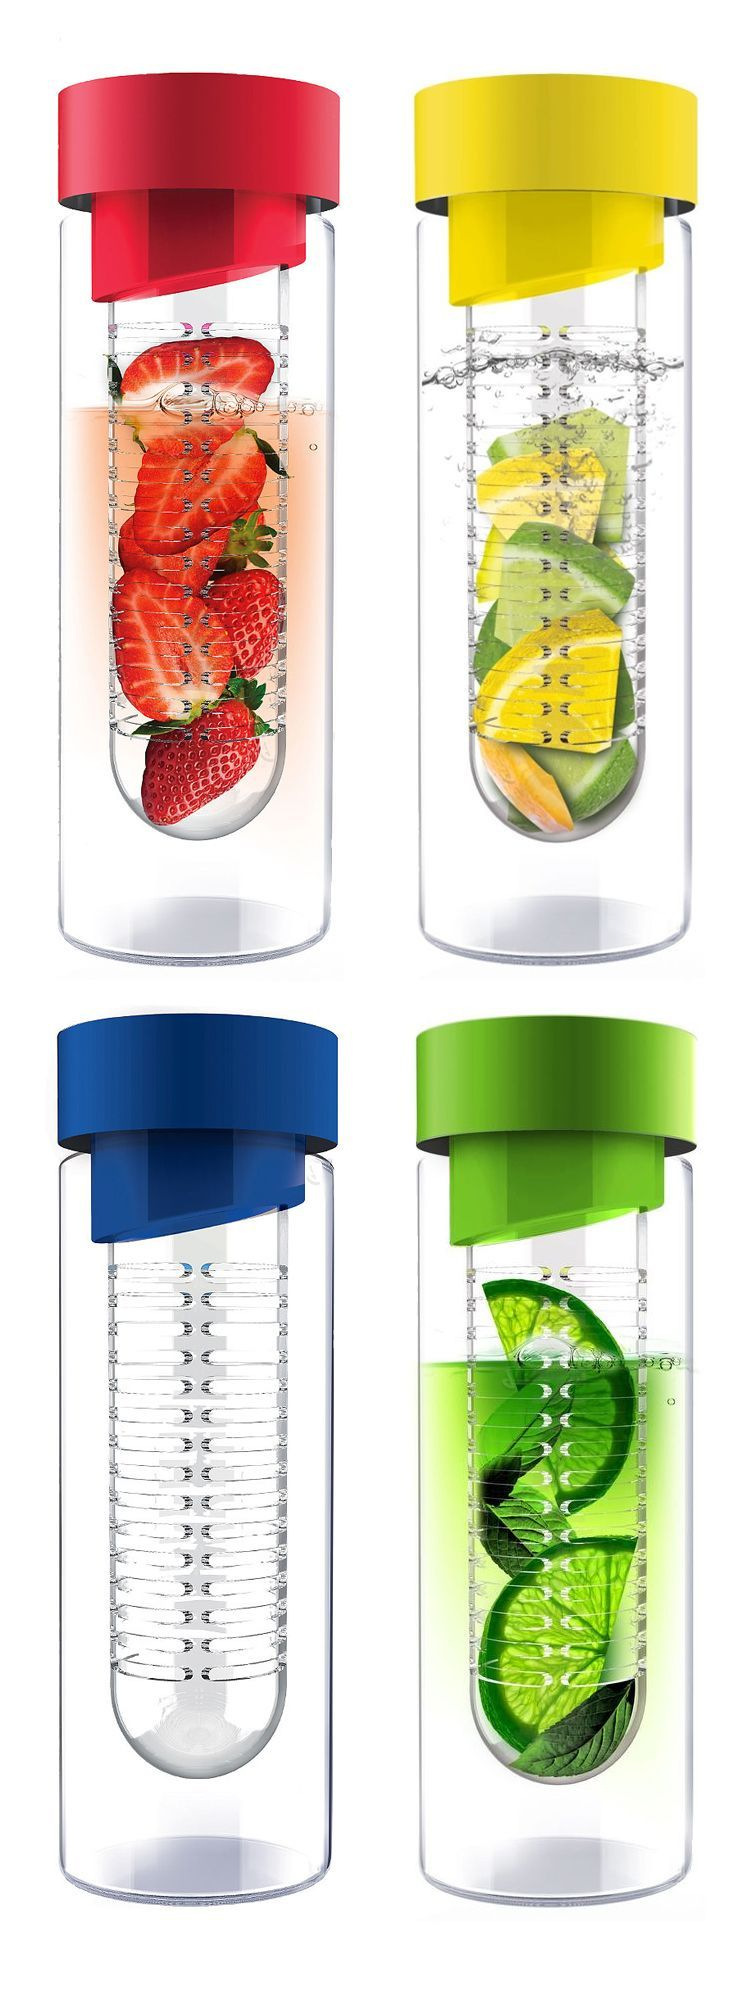 Bring a water bottle! Bonus points if you infuse it with delicious, fresh fruits.